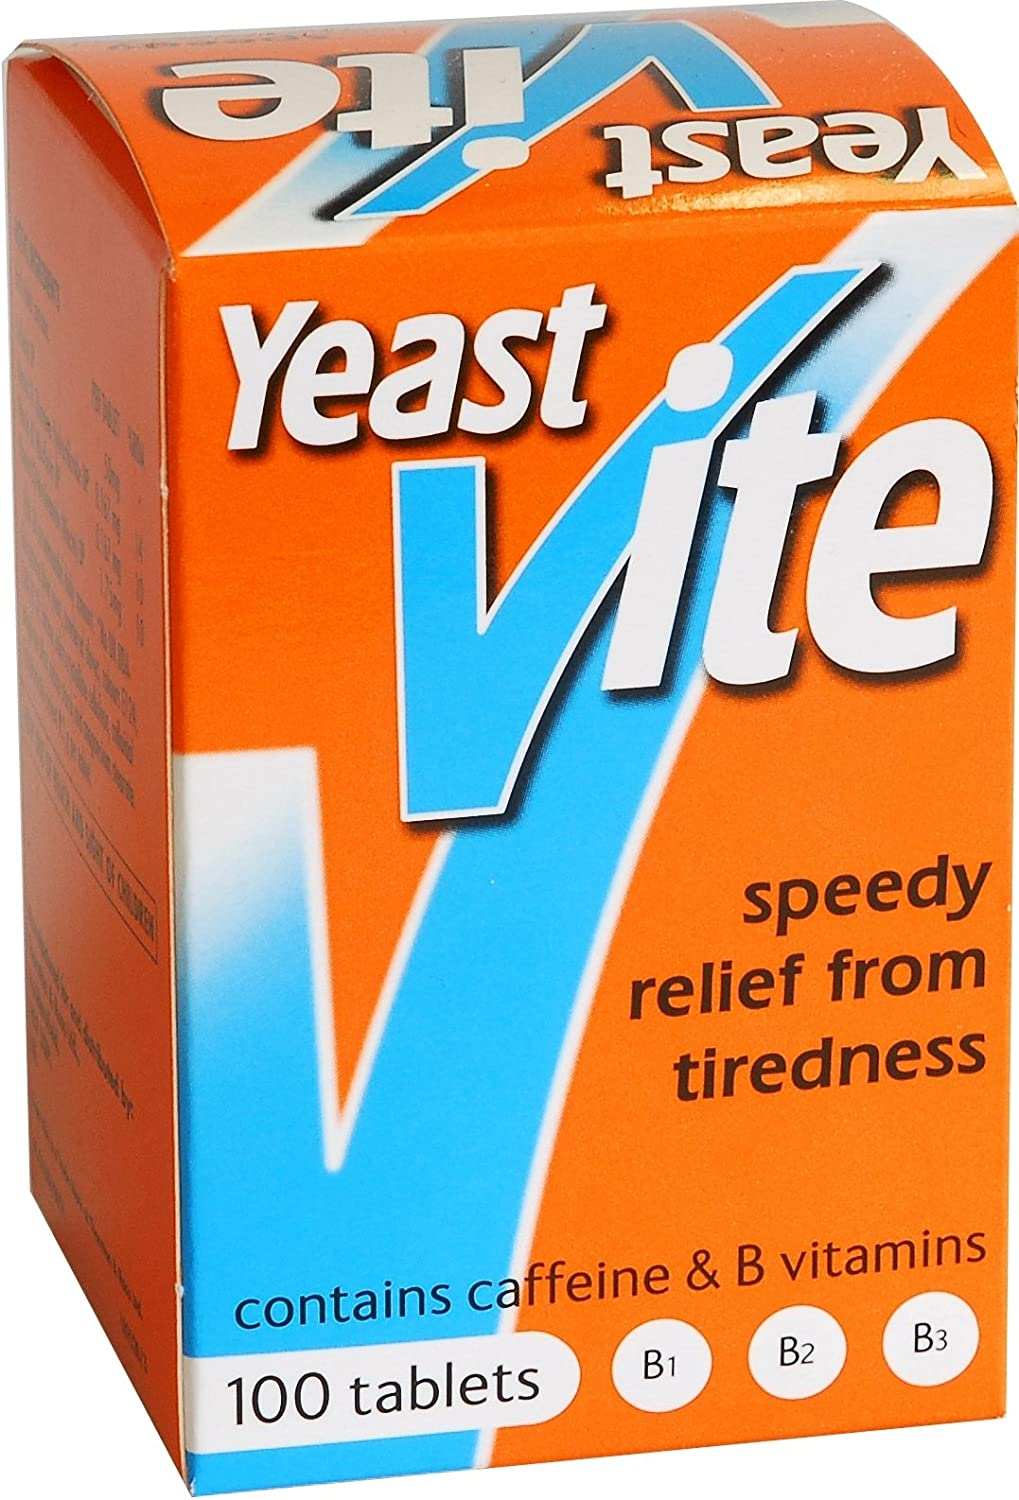 Yeast Vite Tablets, 100 Count, Speedy Relief From Tiredness